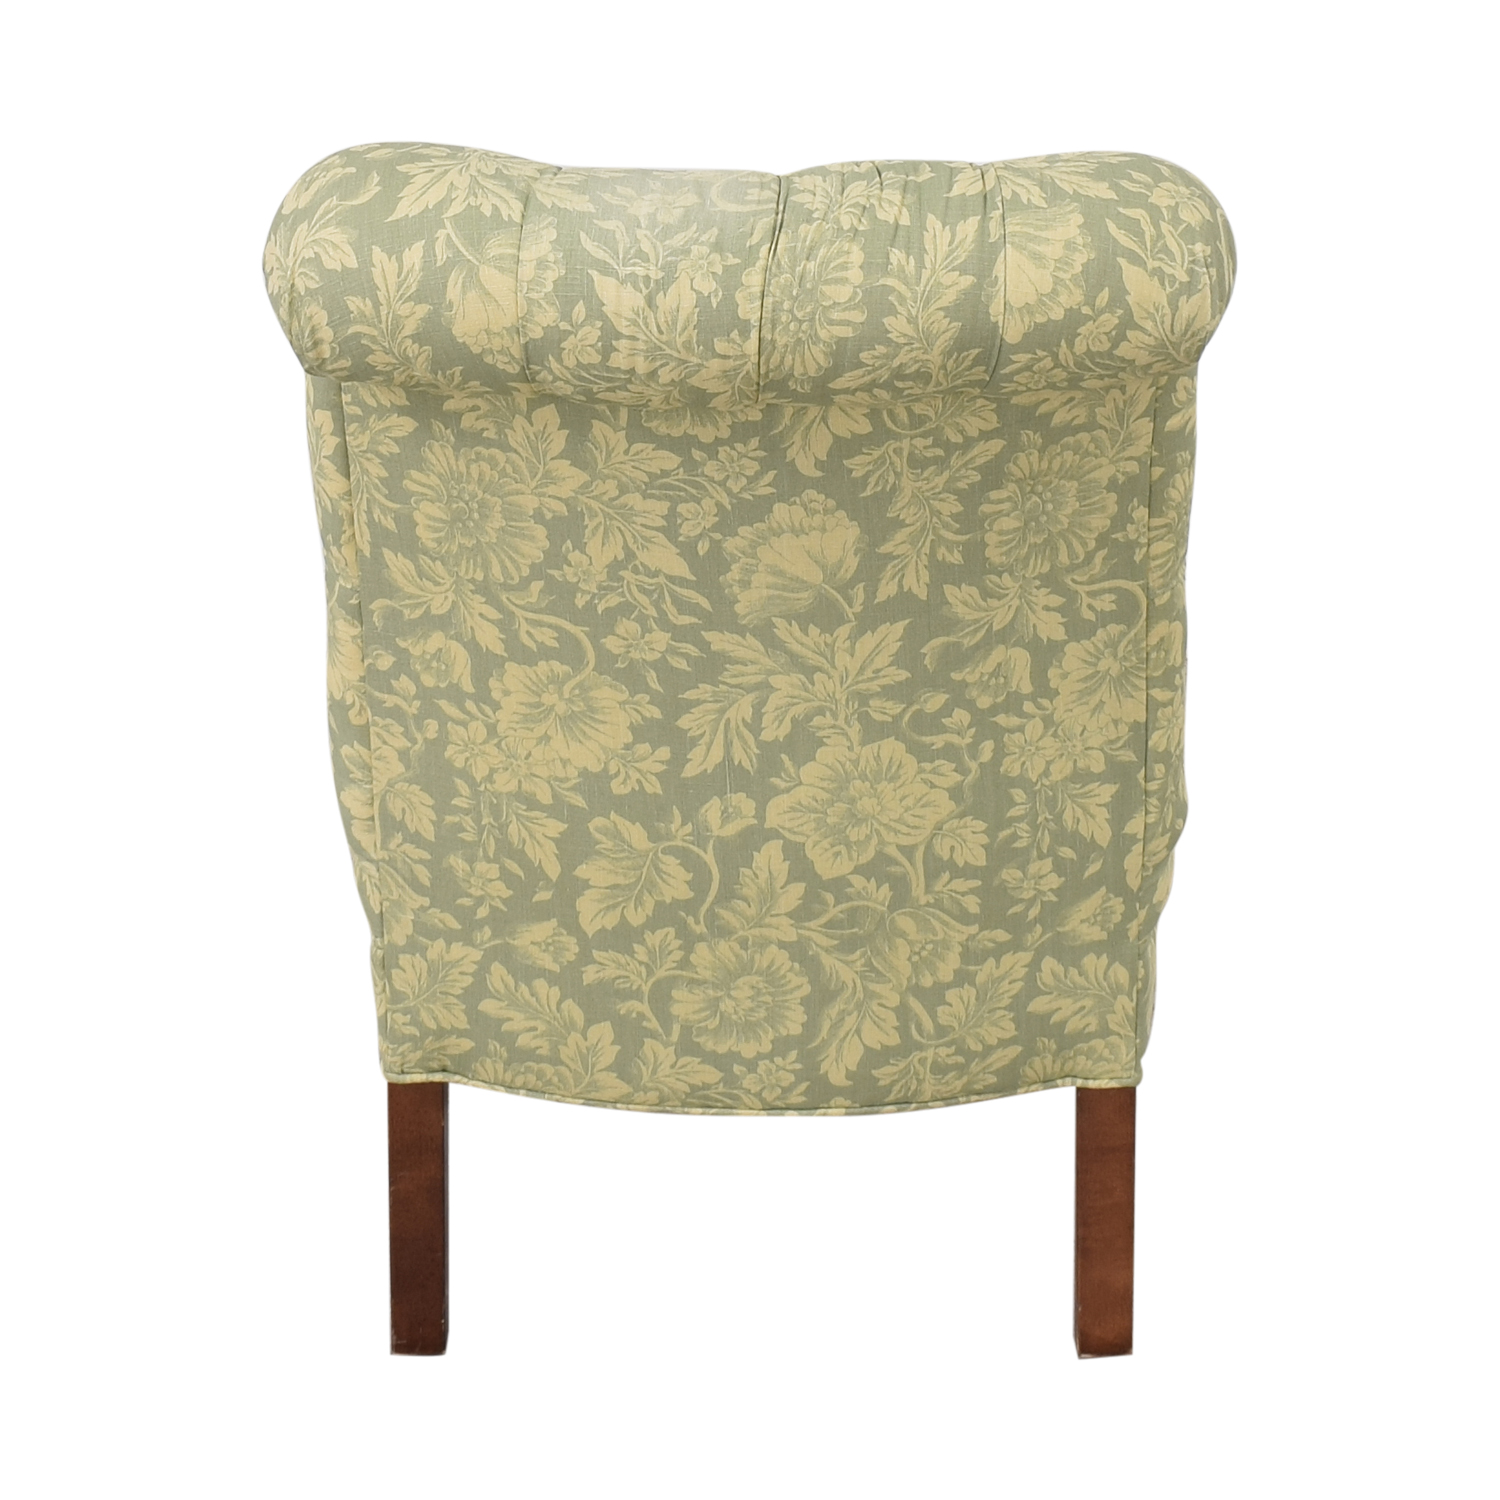 Lee Industries Lee Industries Armless Tufted Chair nj